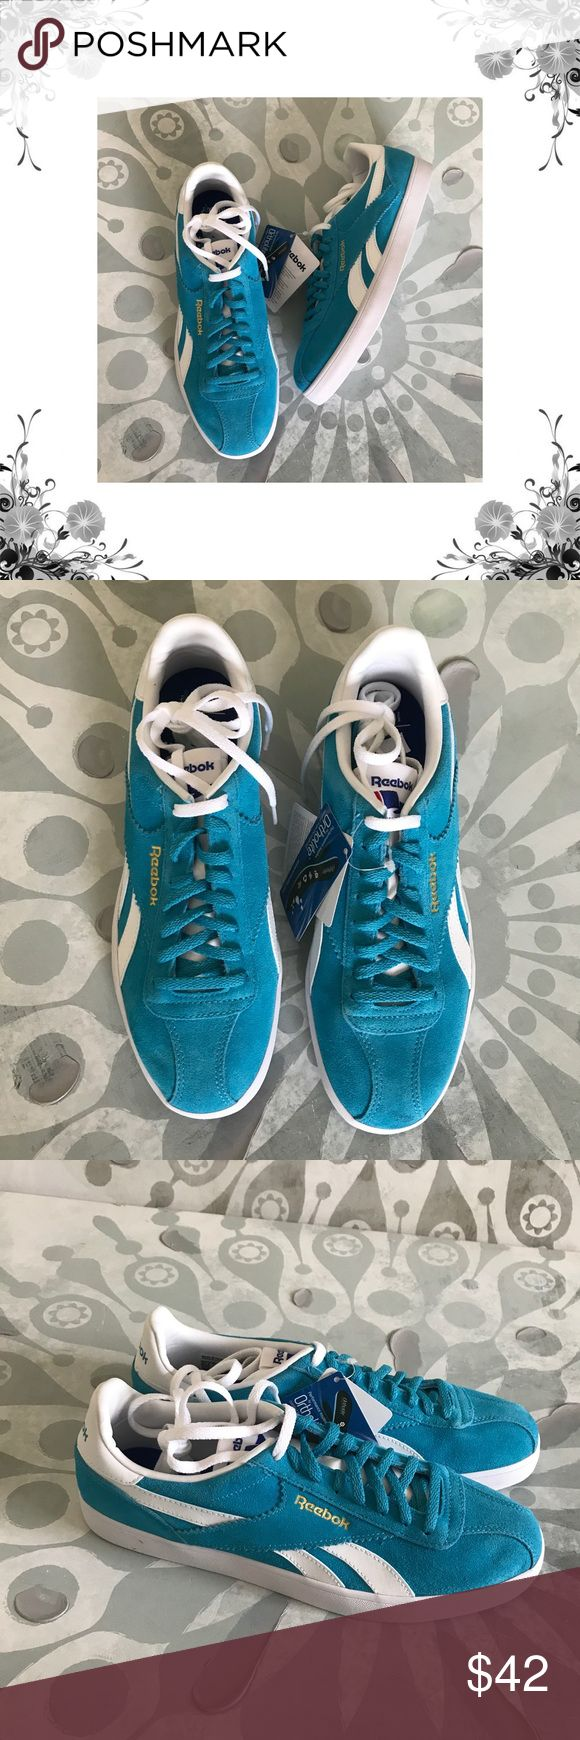 "Reebok Royal Alperez Flight Blue Lace-Up Sneakers Blue/White/Gold. New with box. Heel Height is approx 1"". Platform Height is approx 3/4"". Front Lace closure. Leather/Man Made Upper. Suede fabric. Bundle for discounts! Thank you for shopping my closet! Reebok Shoes Sneakers"